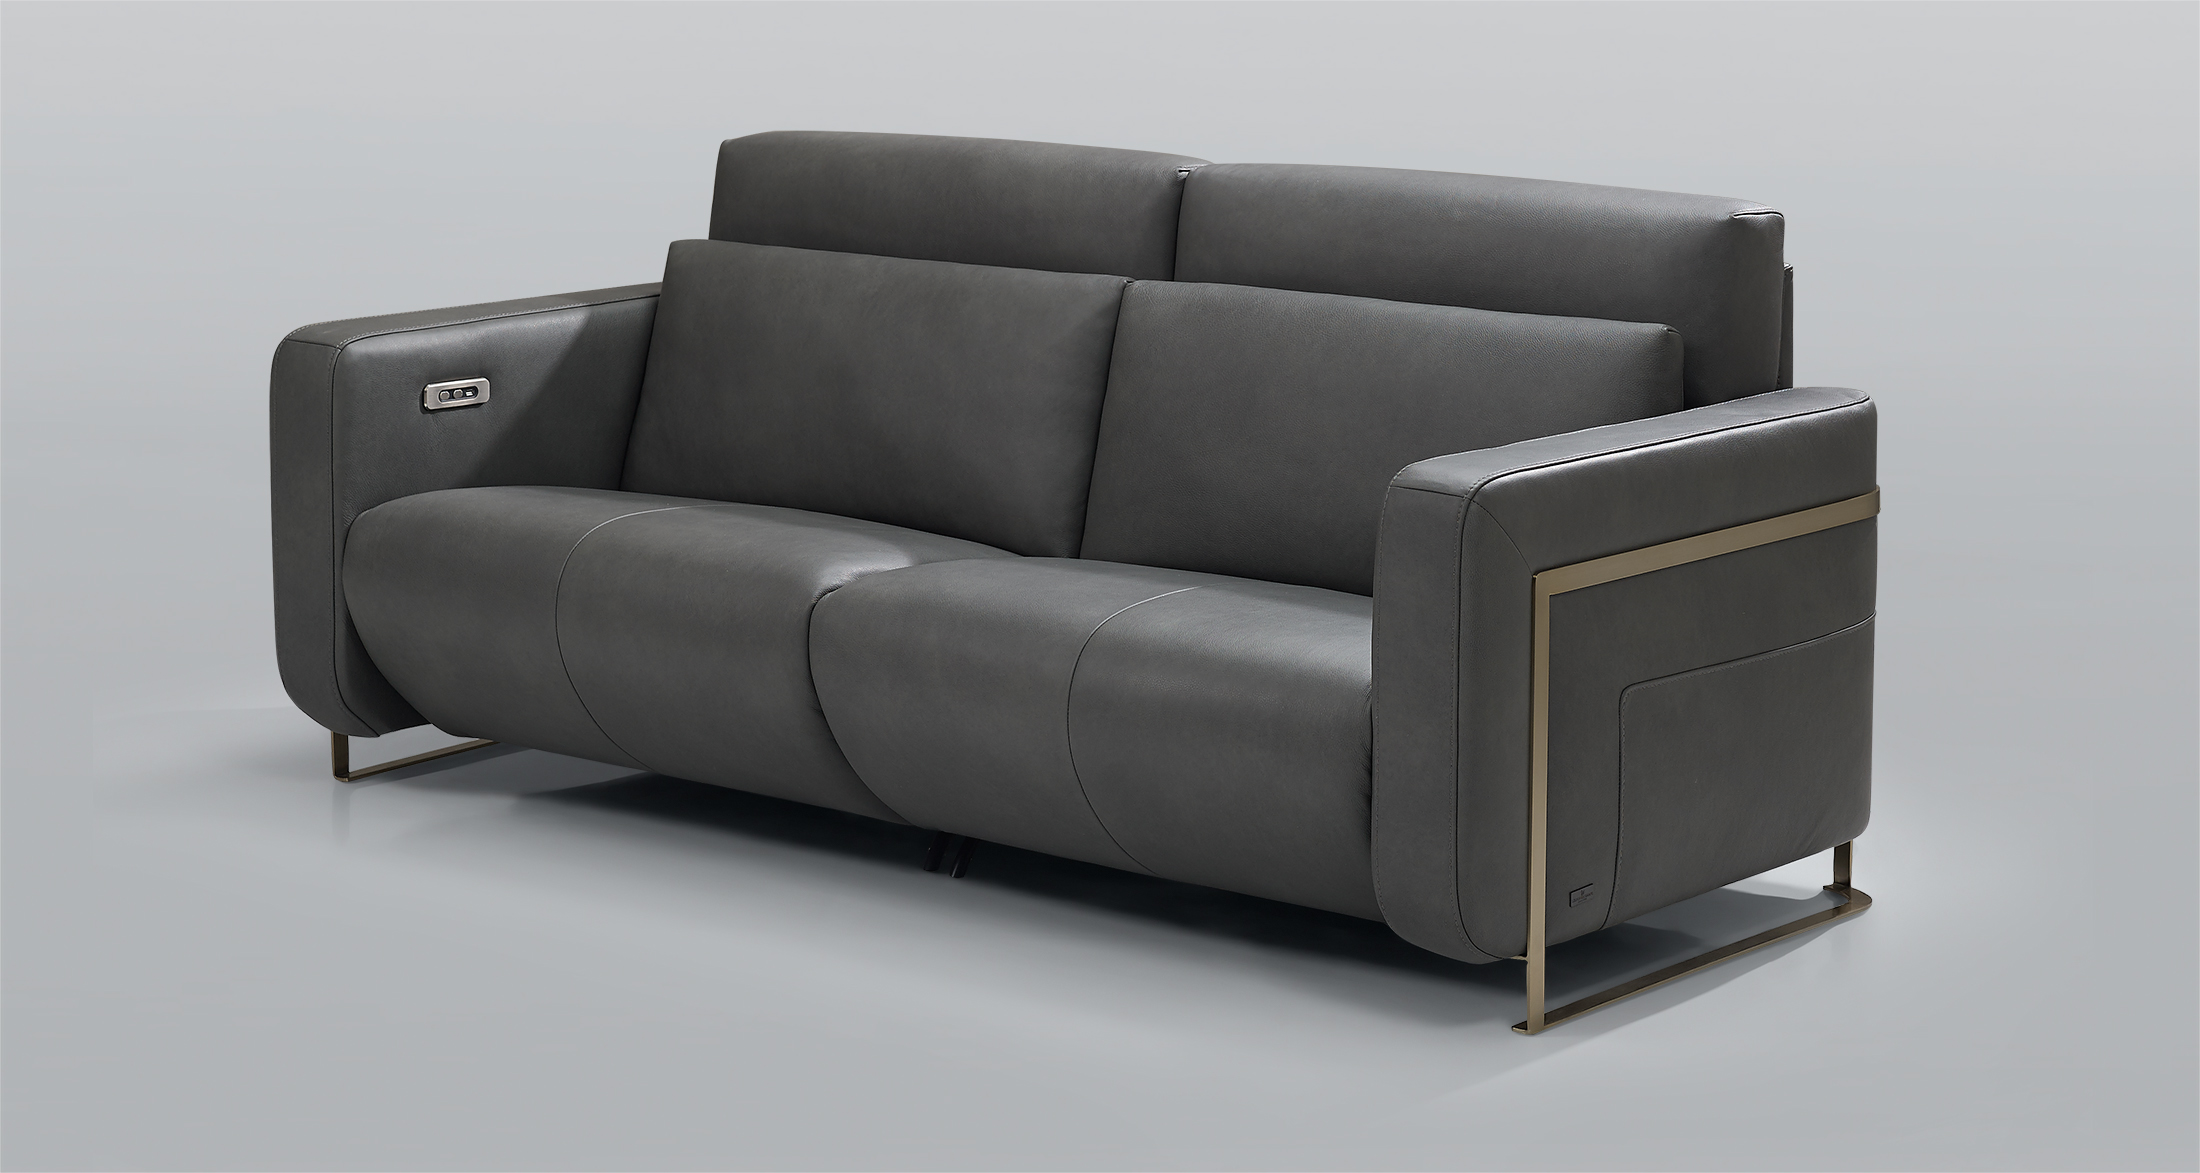 squarerooms kelvin giormani sofas couches leather luxury luxe luxurious new products furniture singapore italian buy retto dark grey